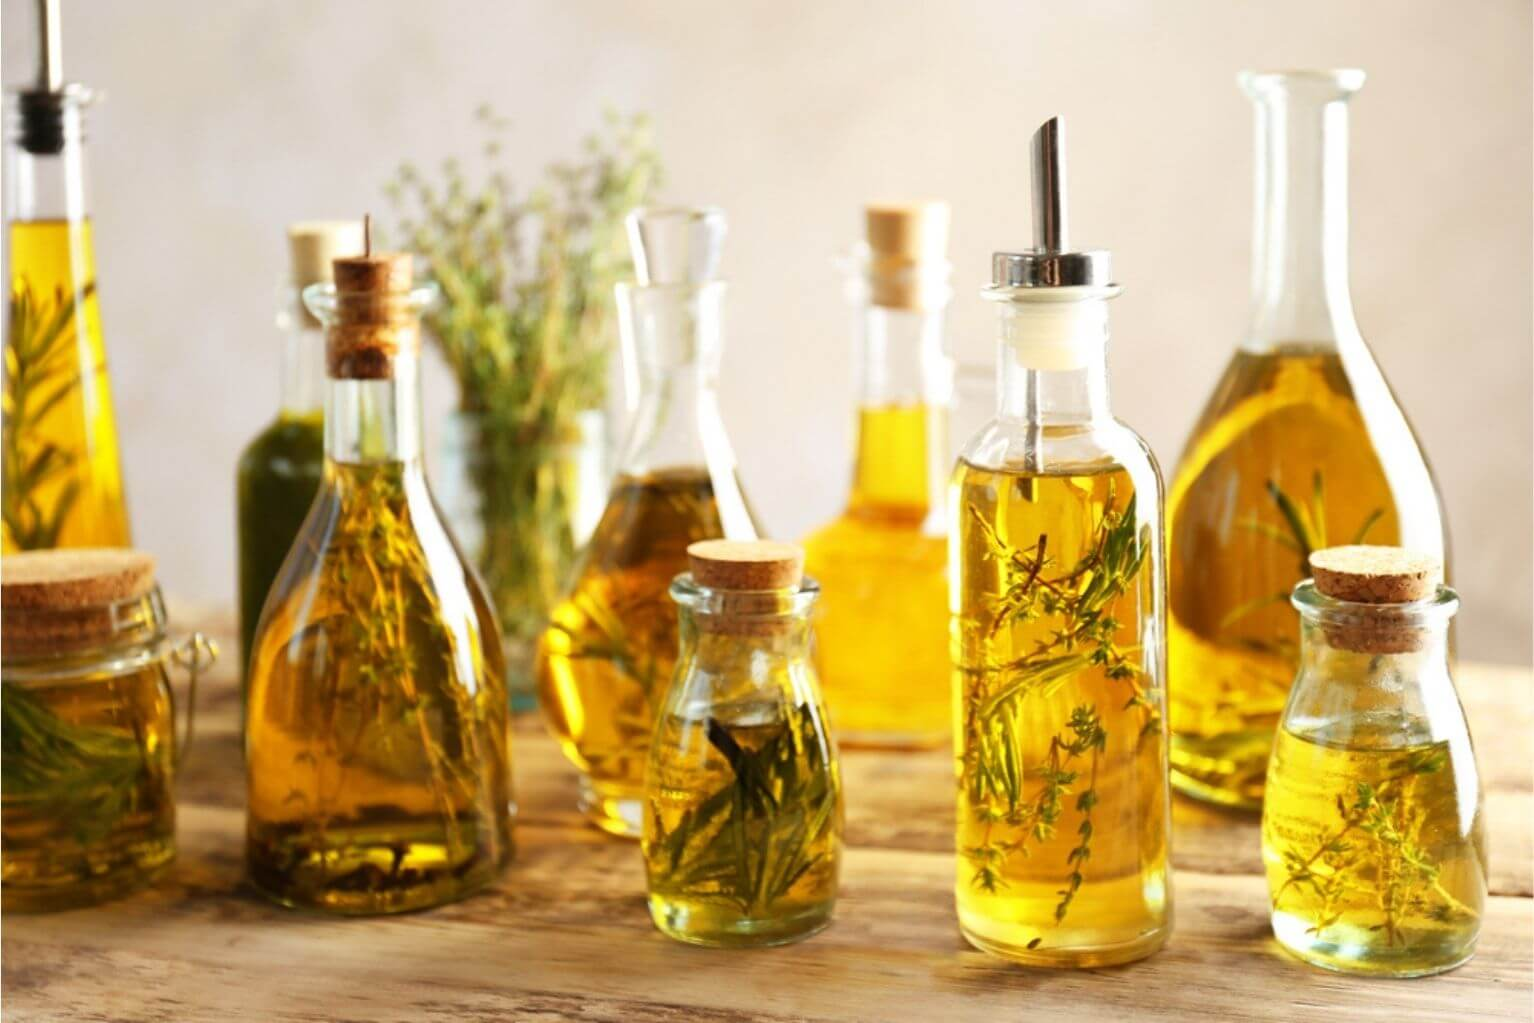 Many bottles of herb infused oil on a wooden table.